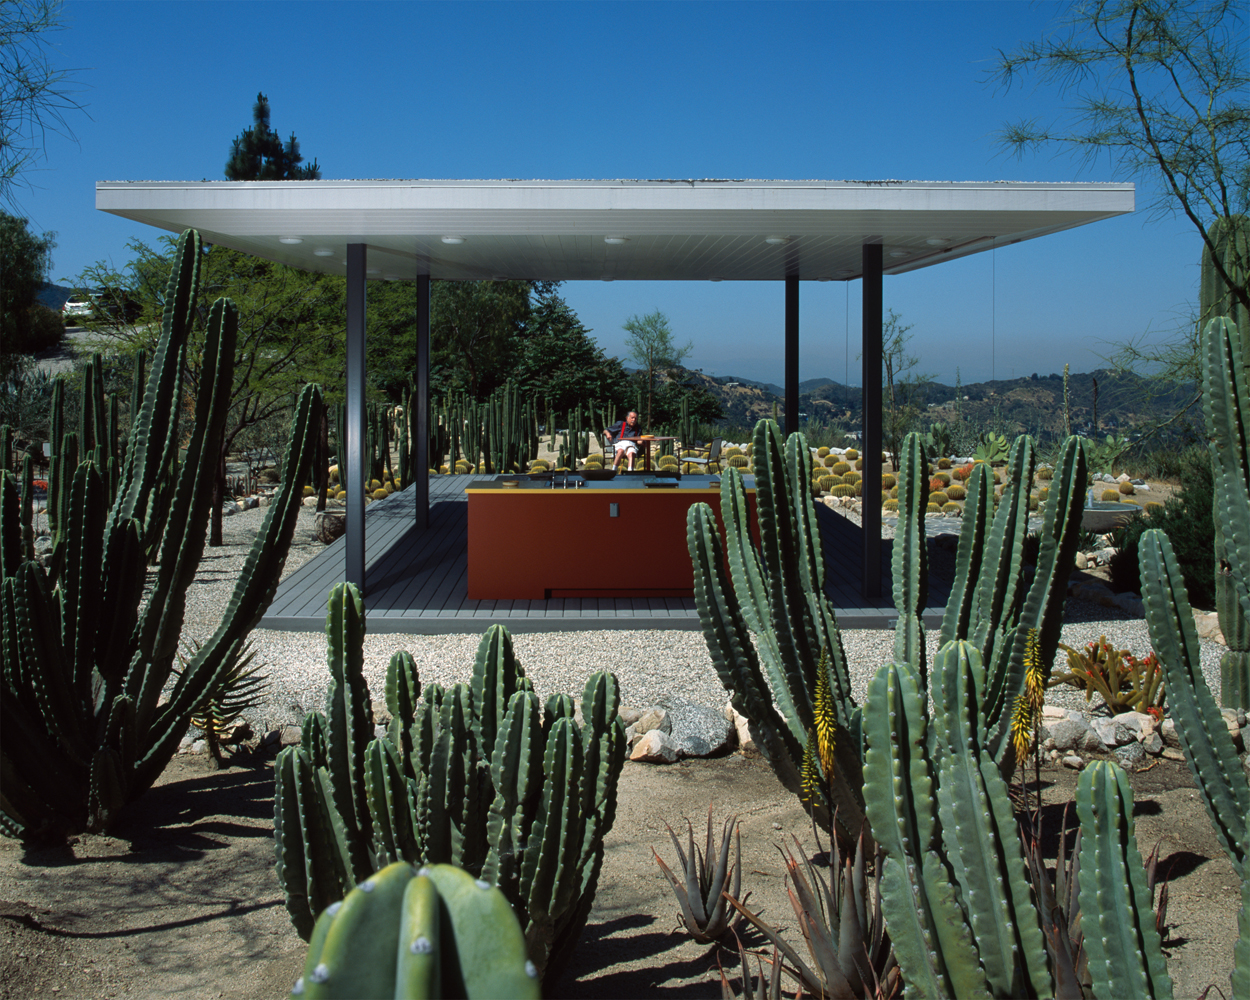 Julius Shulman with Pavilion in Pasadena, CA. 2004 Roger White, architect